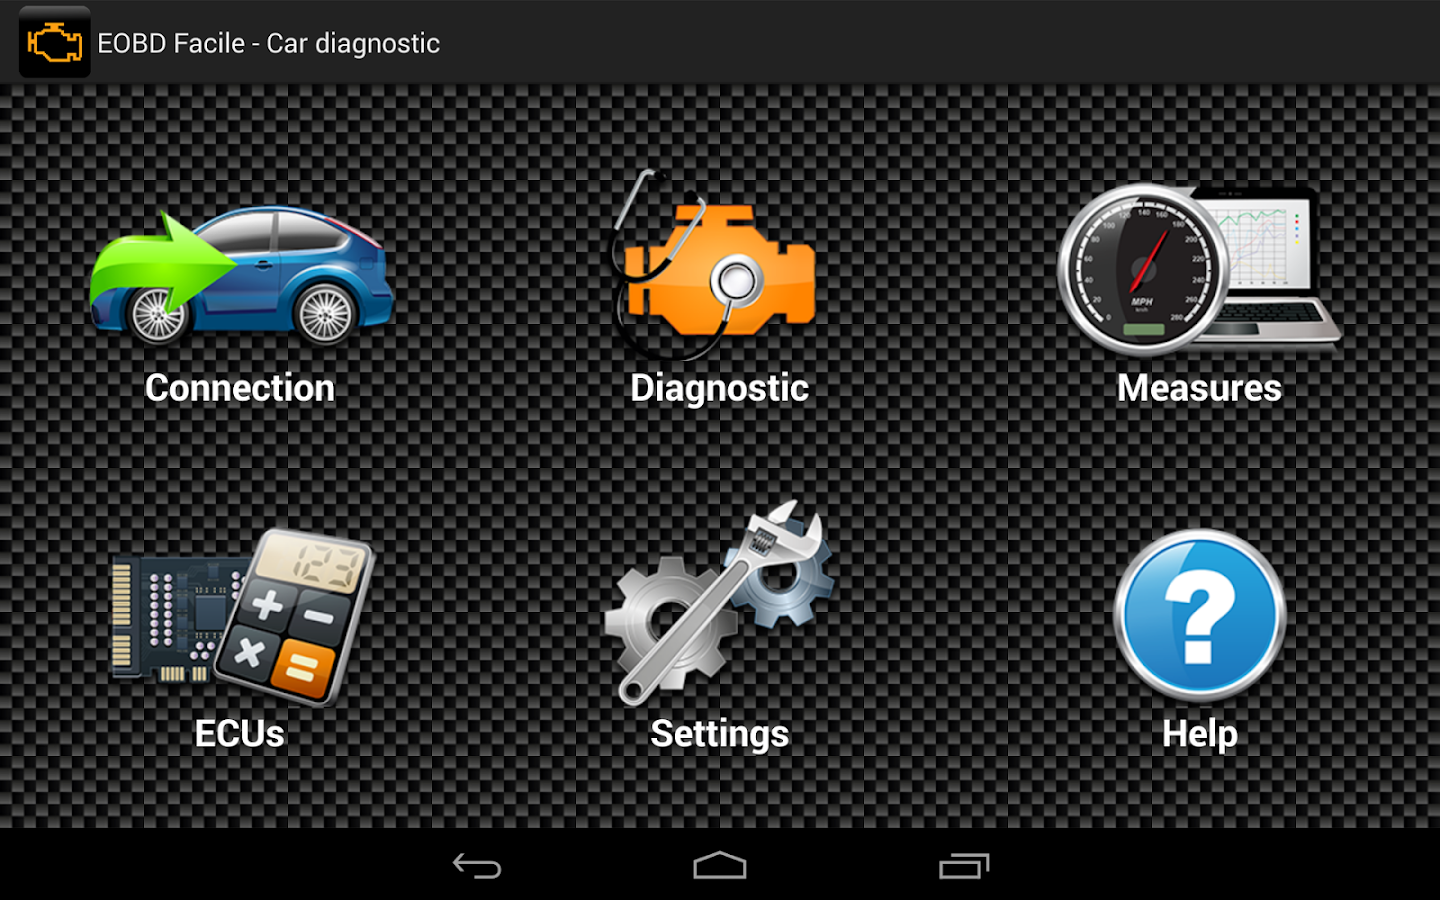 e obd2 facile car diagnostics android apps on google play. Black Bedroom Furniture Sets. Home Design Ideas